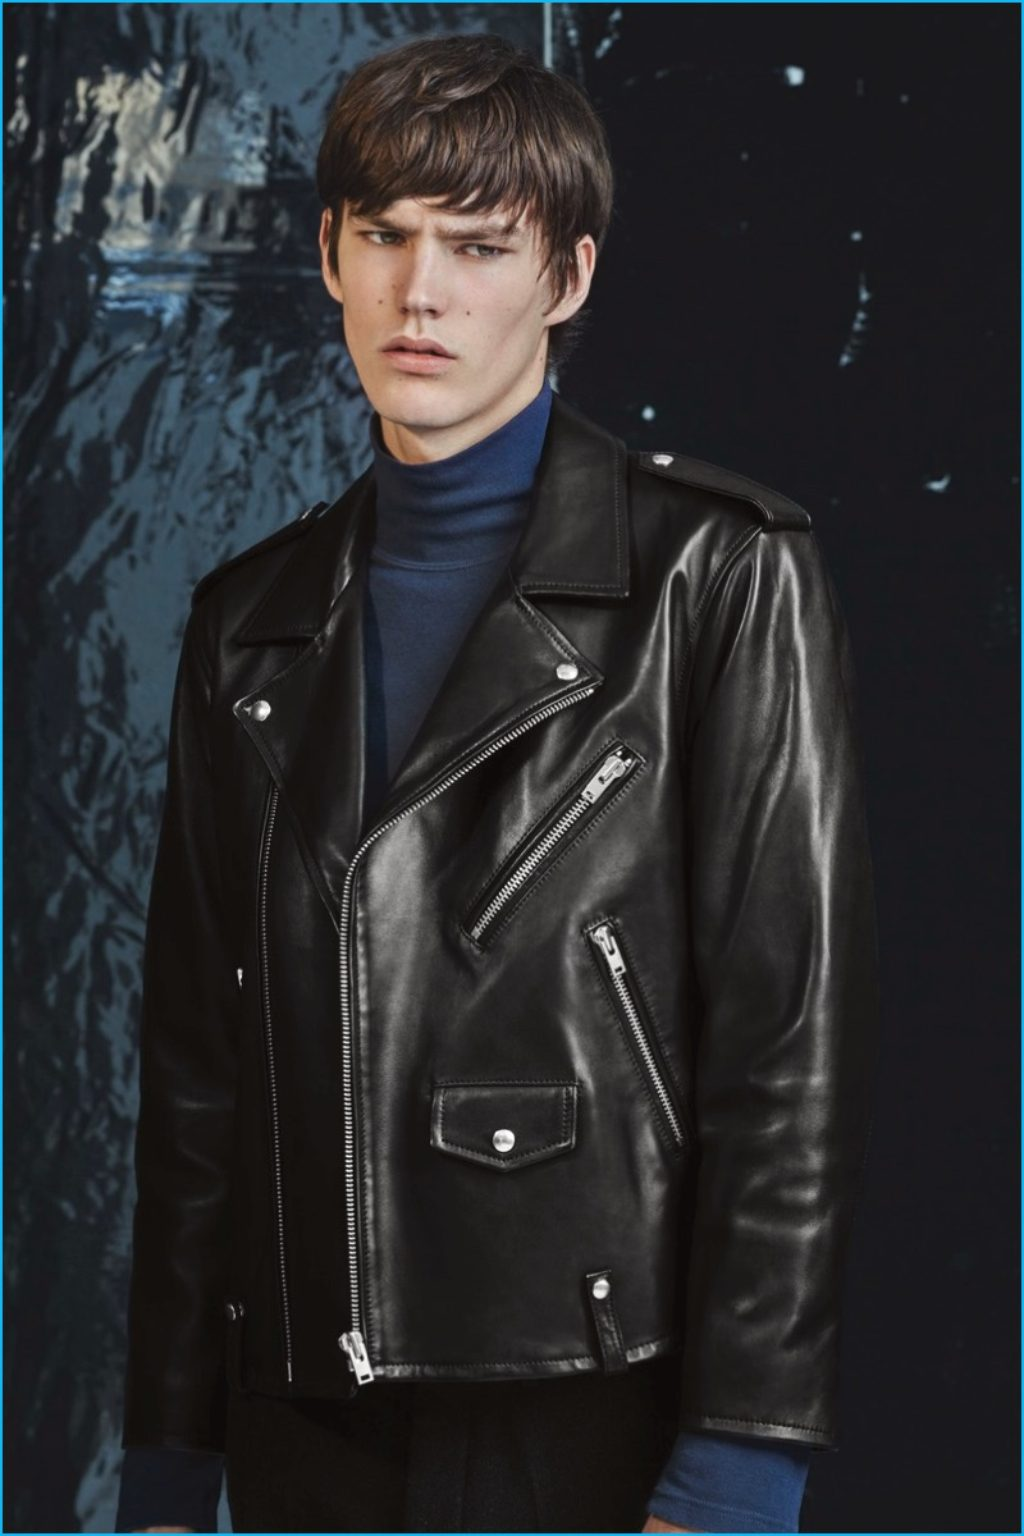 Male Model Wearing a Black Leather Motorcycle Jacket and Blue Turtleneck